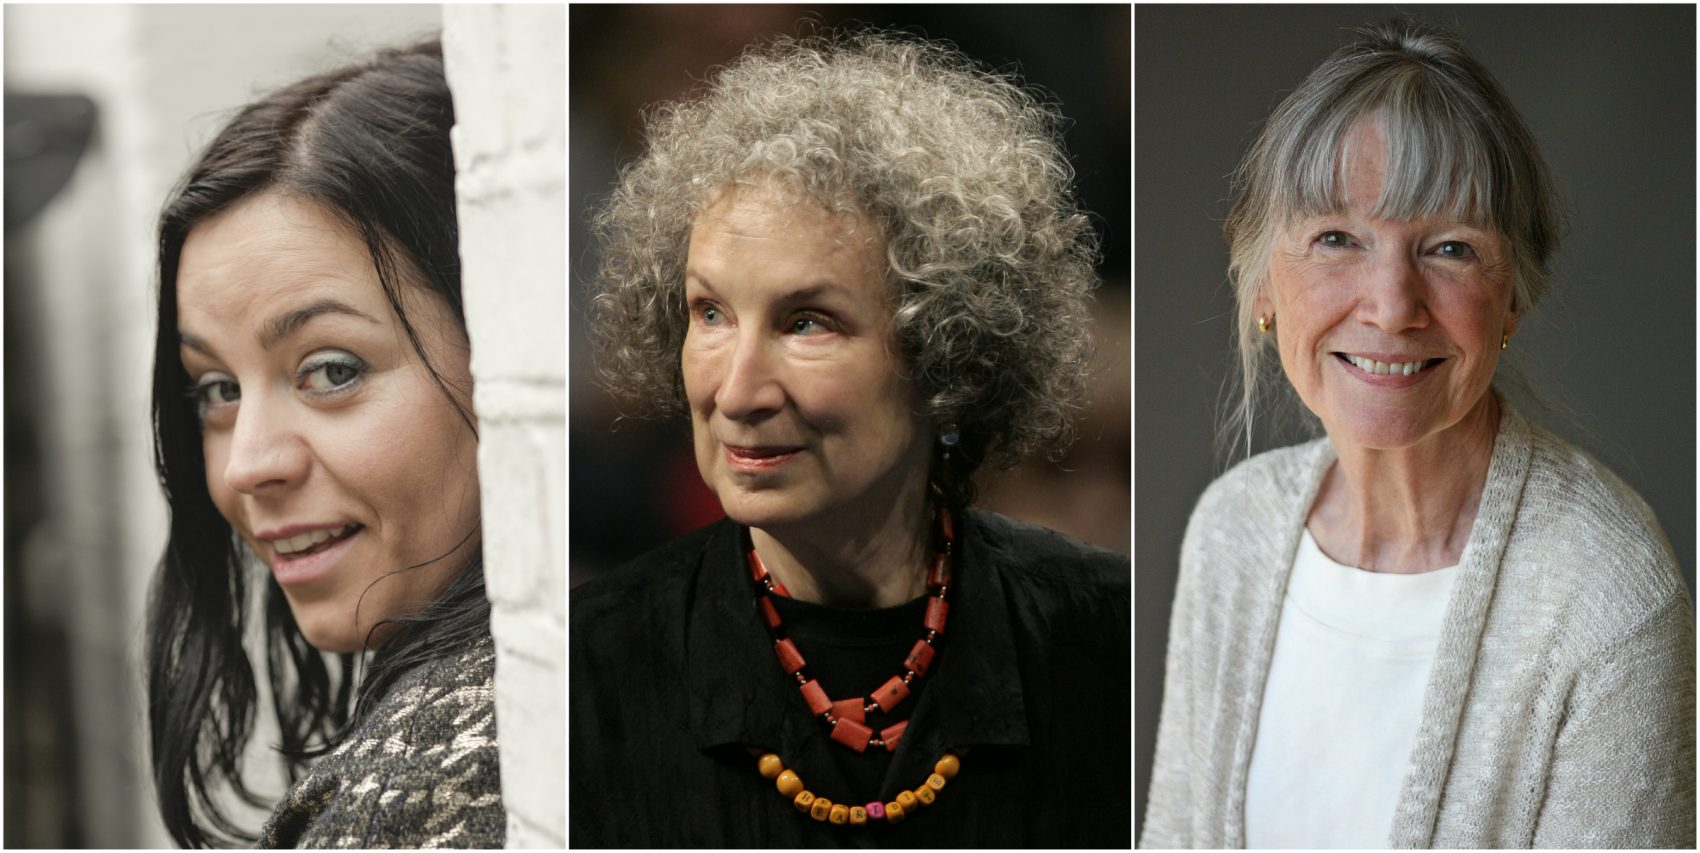 Jenni Fagan, Margaret Atwood and Anne Tyler. (Courtesy Urszula Soltys, Daniel Ochoa de Olza for AP, and Michael Lionstar)